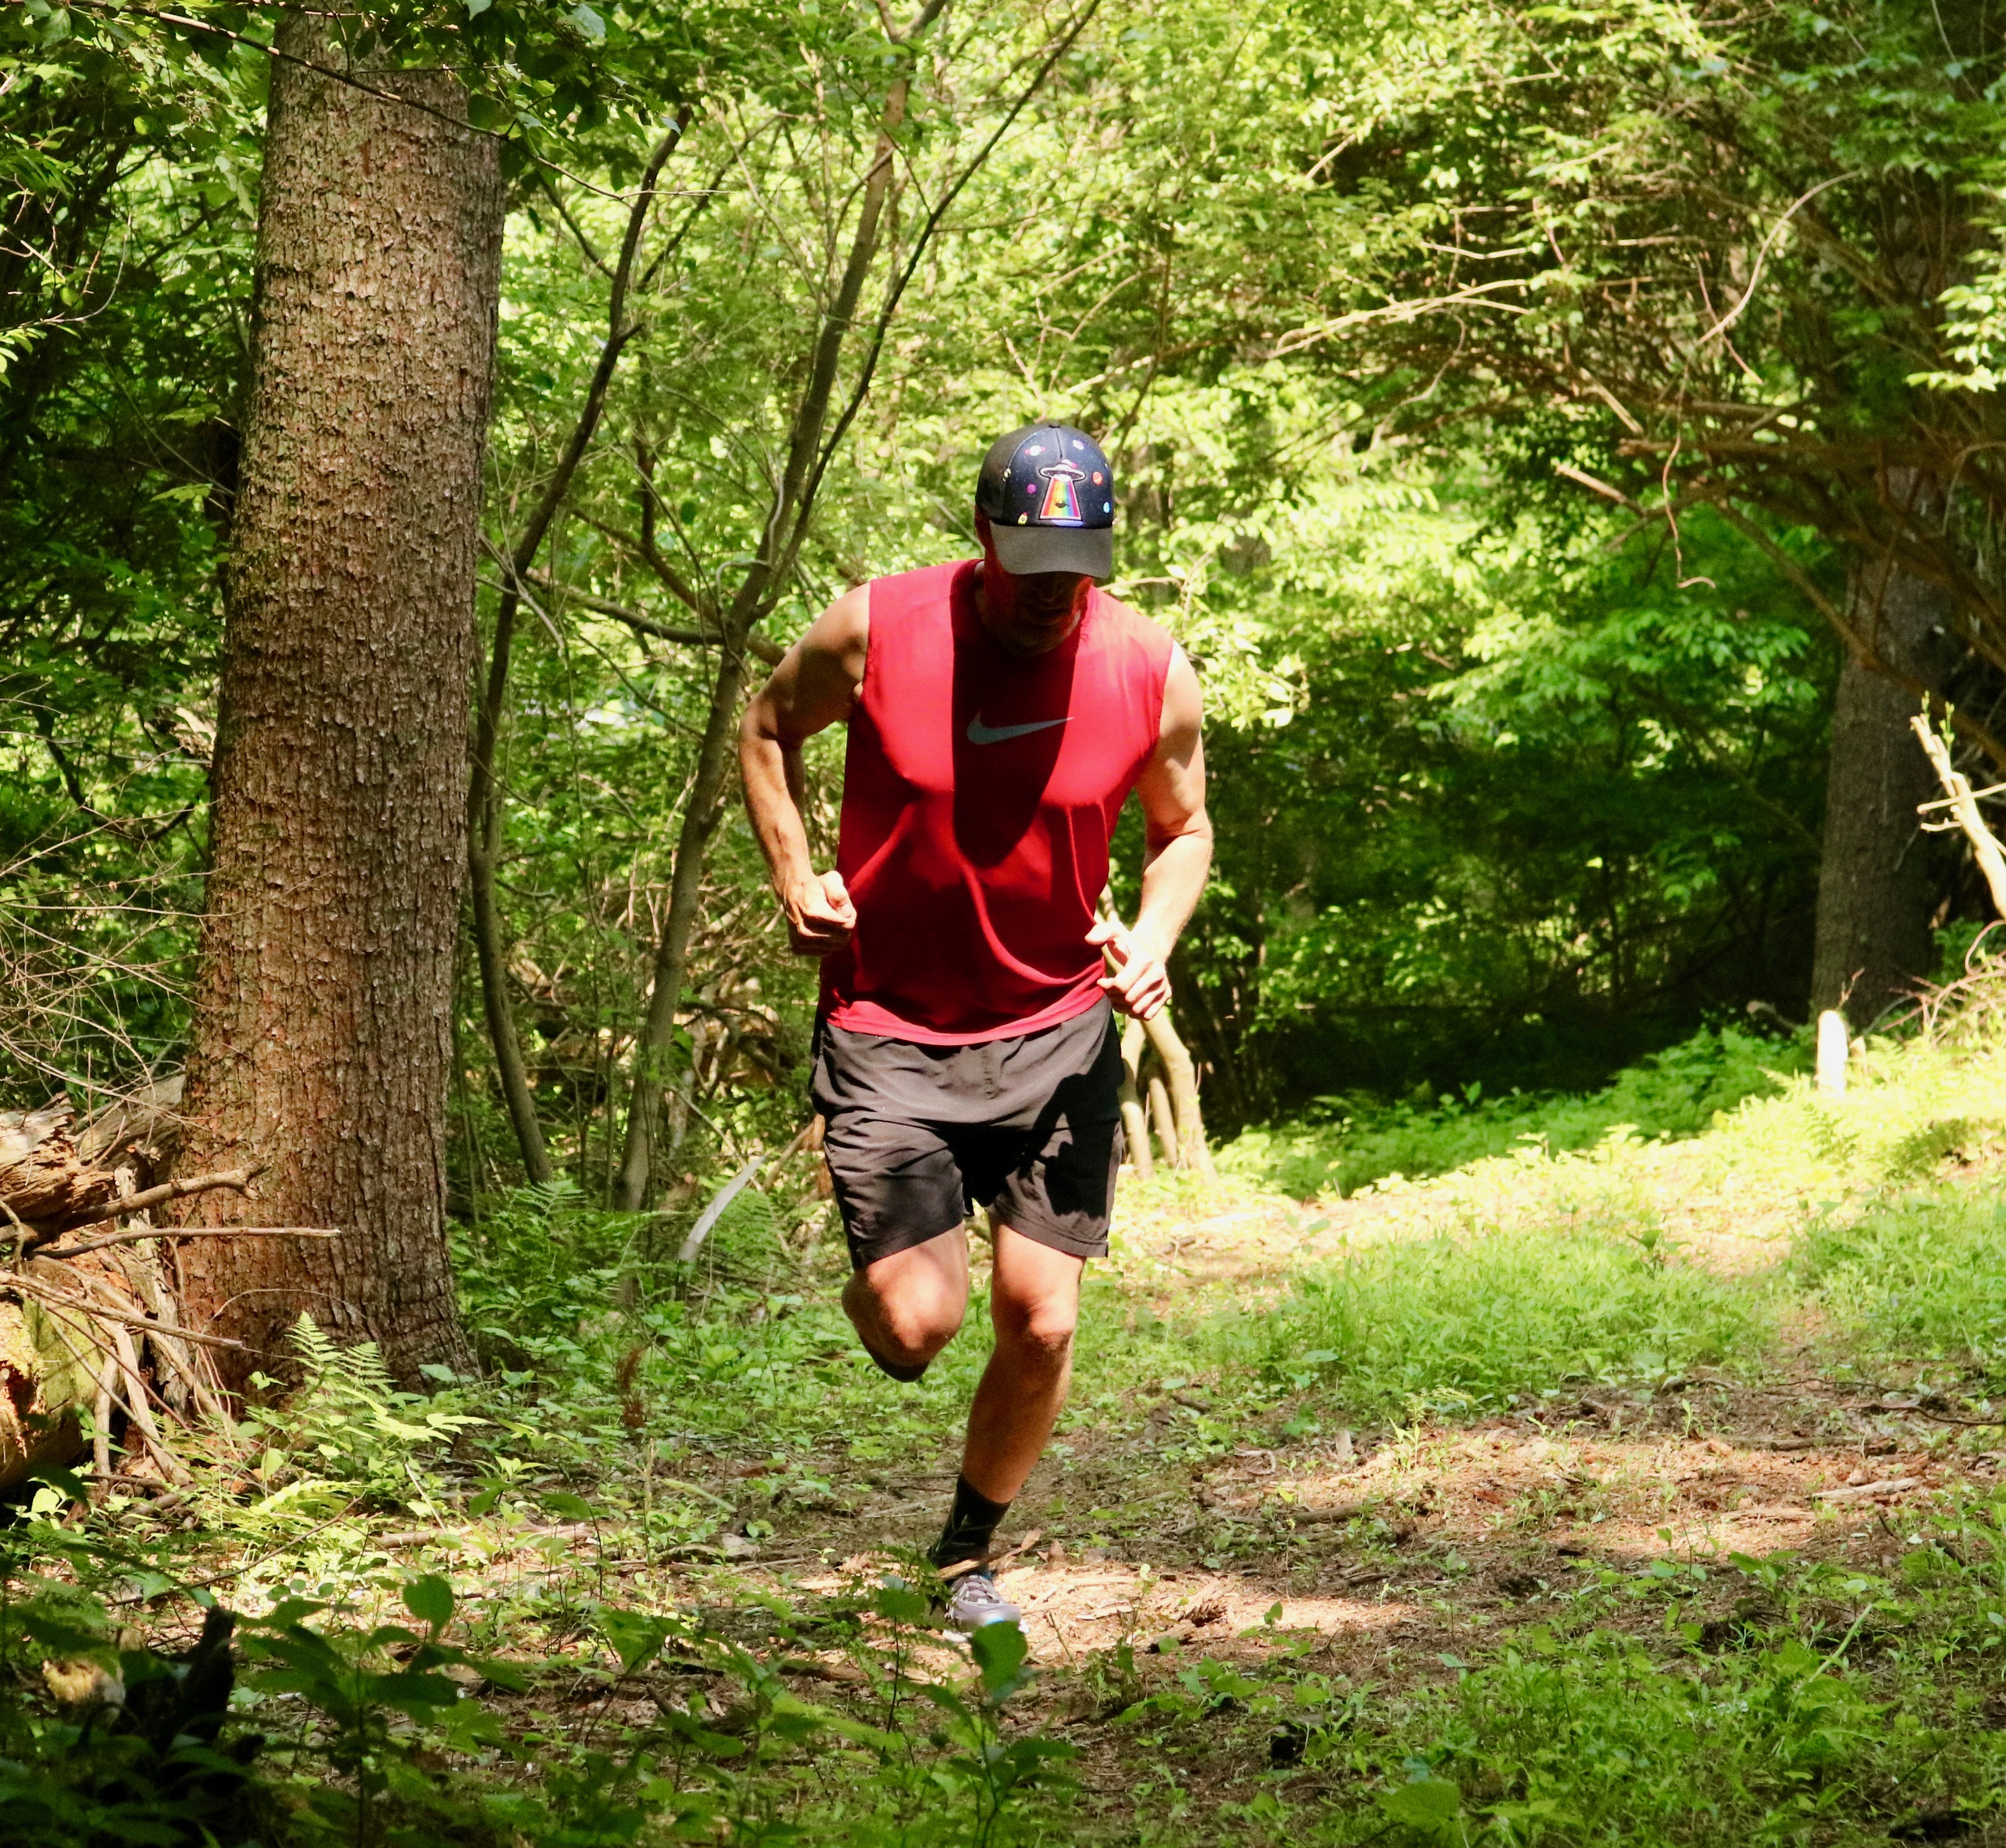 Preparing for your first trail race